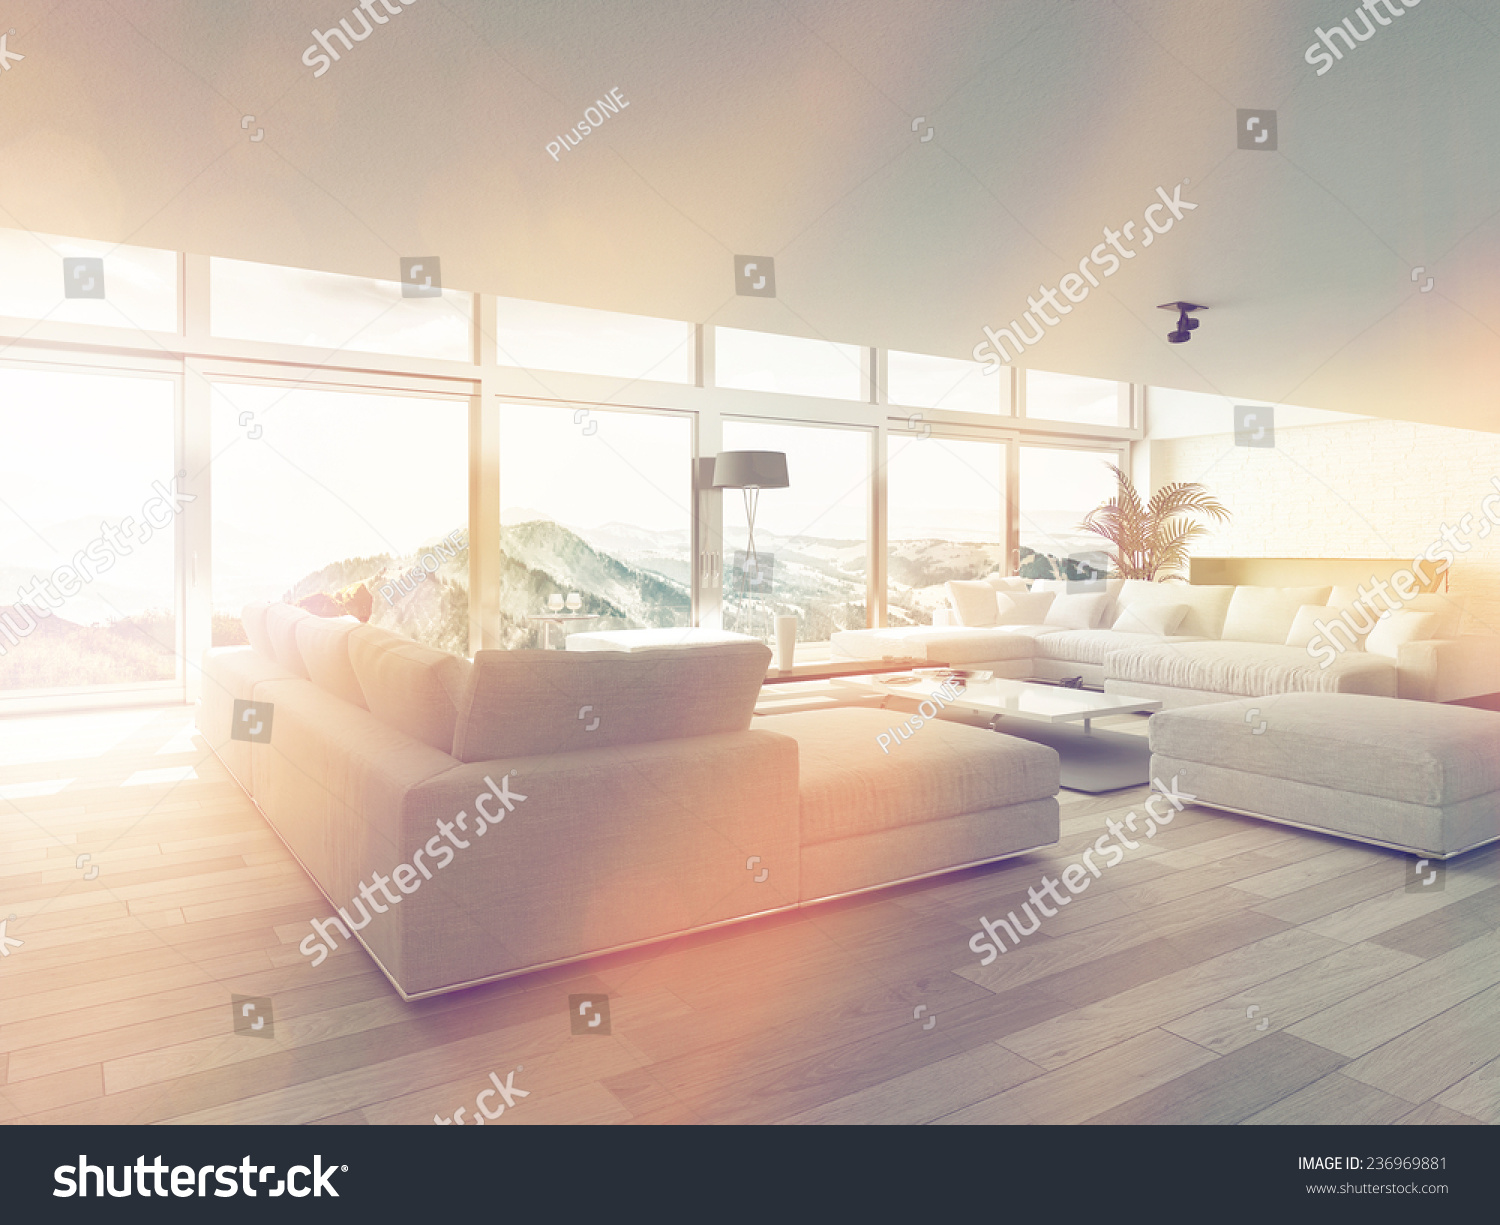 Interior windows architectural - Modern Living Room Area Near Glass Windows Inside Architectural House Illuminated By Sunlight 3d Rendering